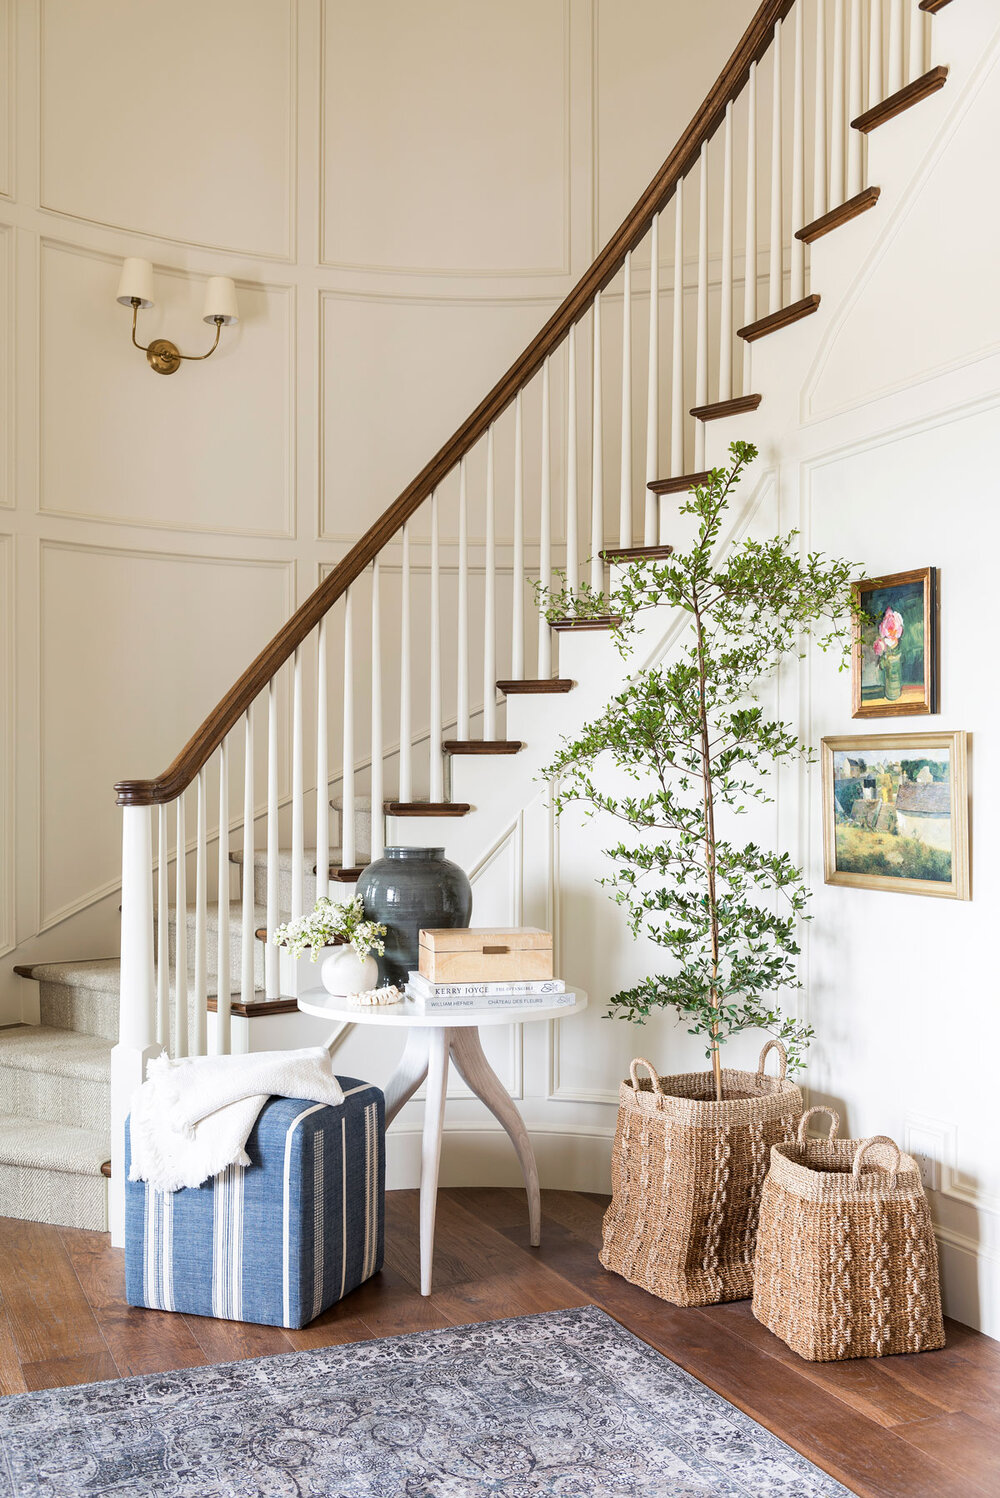 Our Most-Loved Project Plants